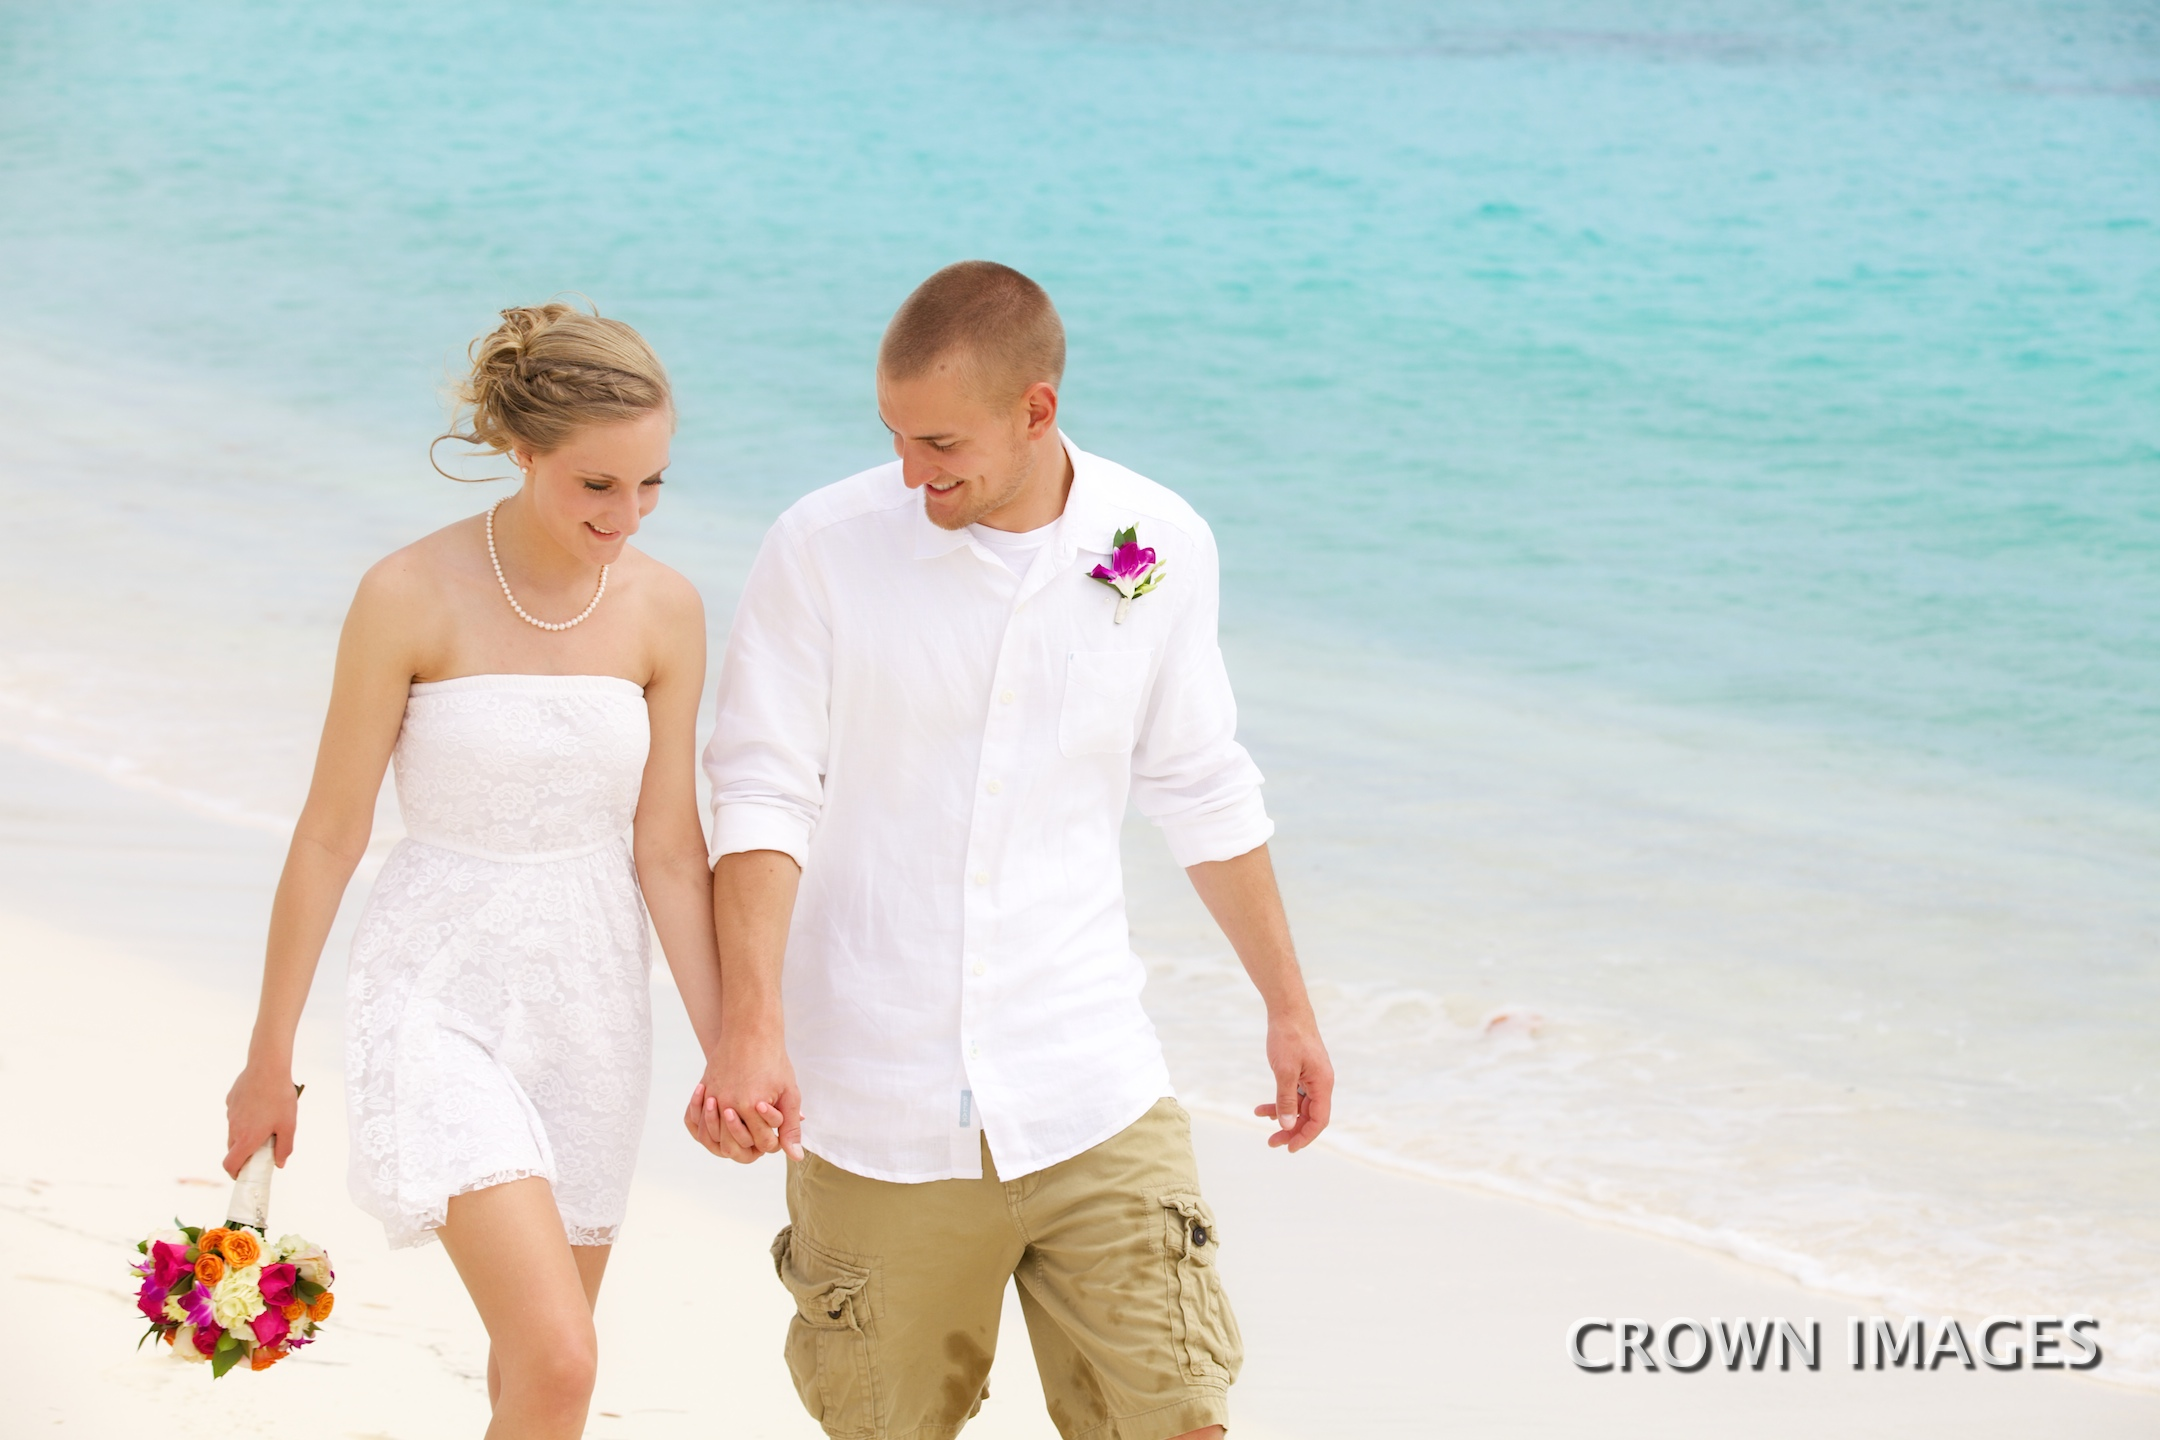 crown images photography in the virgin islands